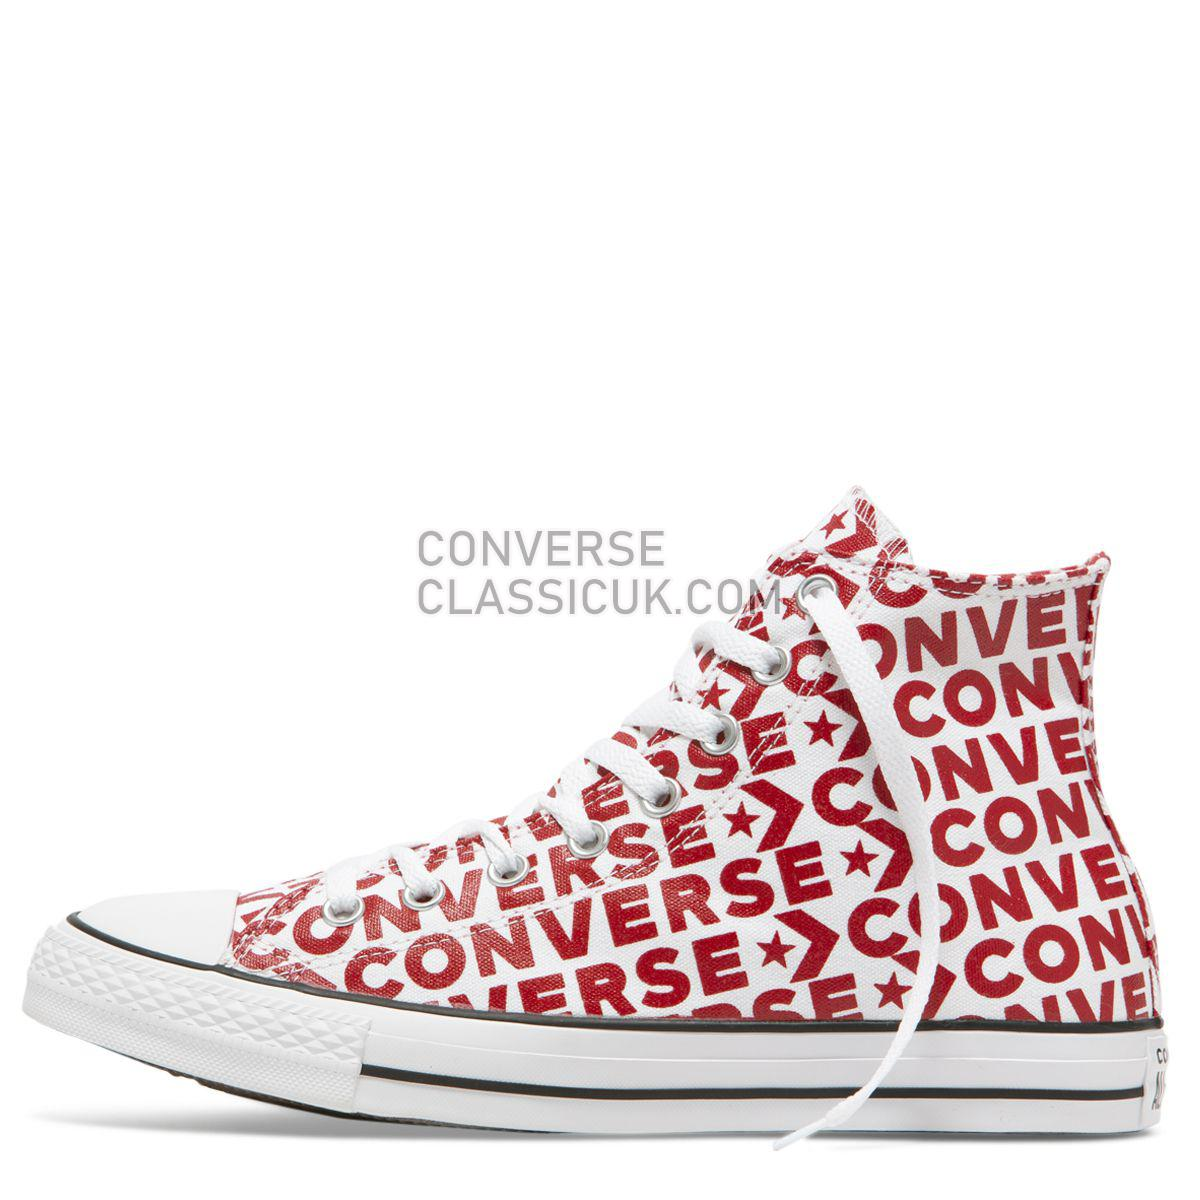 Converse Chuck Taylor All Star Wordmark High Top White Mens Womens Unisex 163953 White/Enamel Red/White Shoes